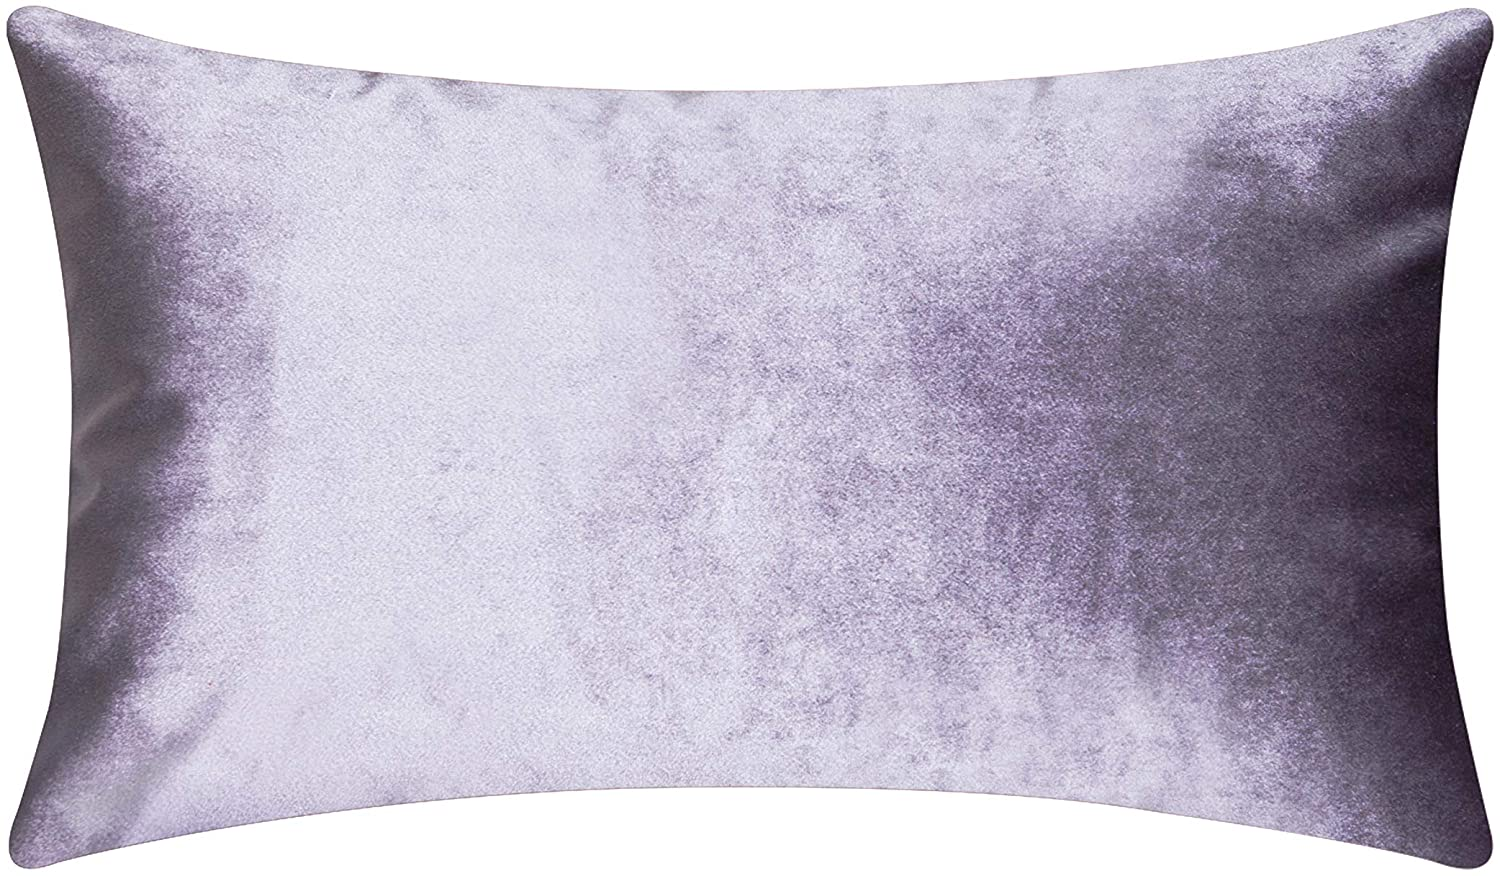 Home Brilliant Rectangular Oblong Accent Throw Pillow Cover Decorative Cushion Cover for Neck Support Nursing, 12 x 20 Inch(30cmx50cm), Lilac